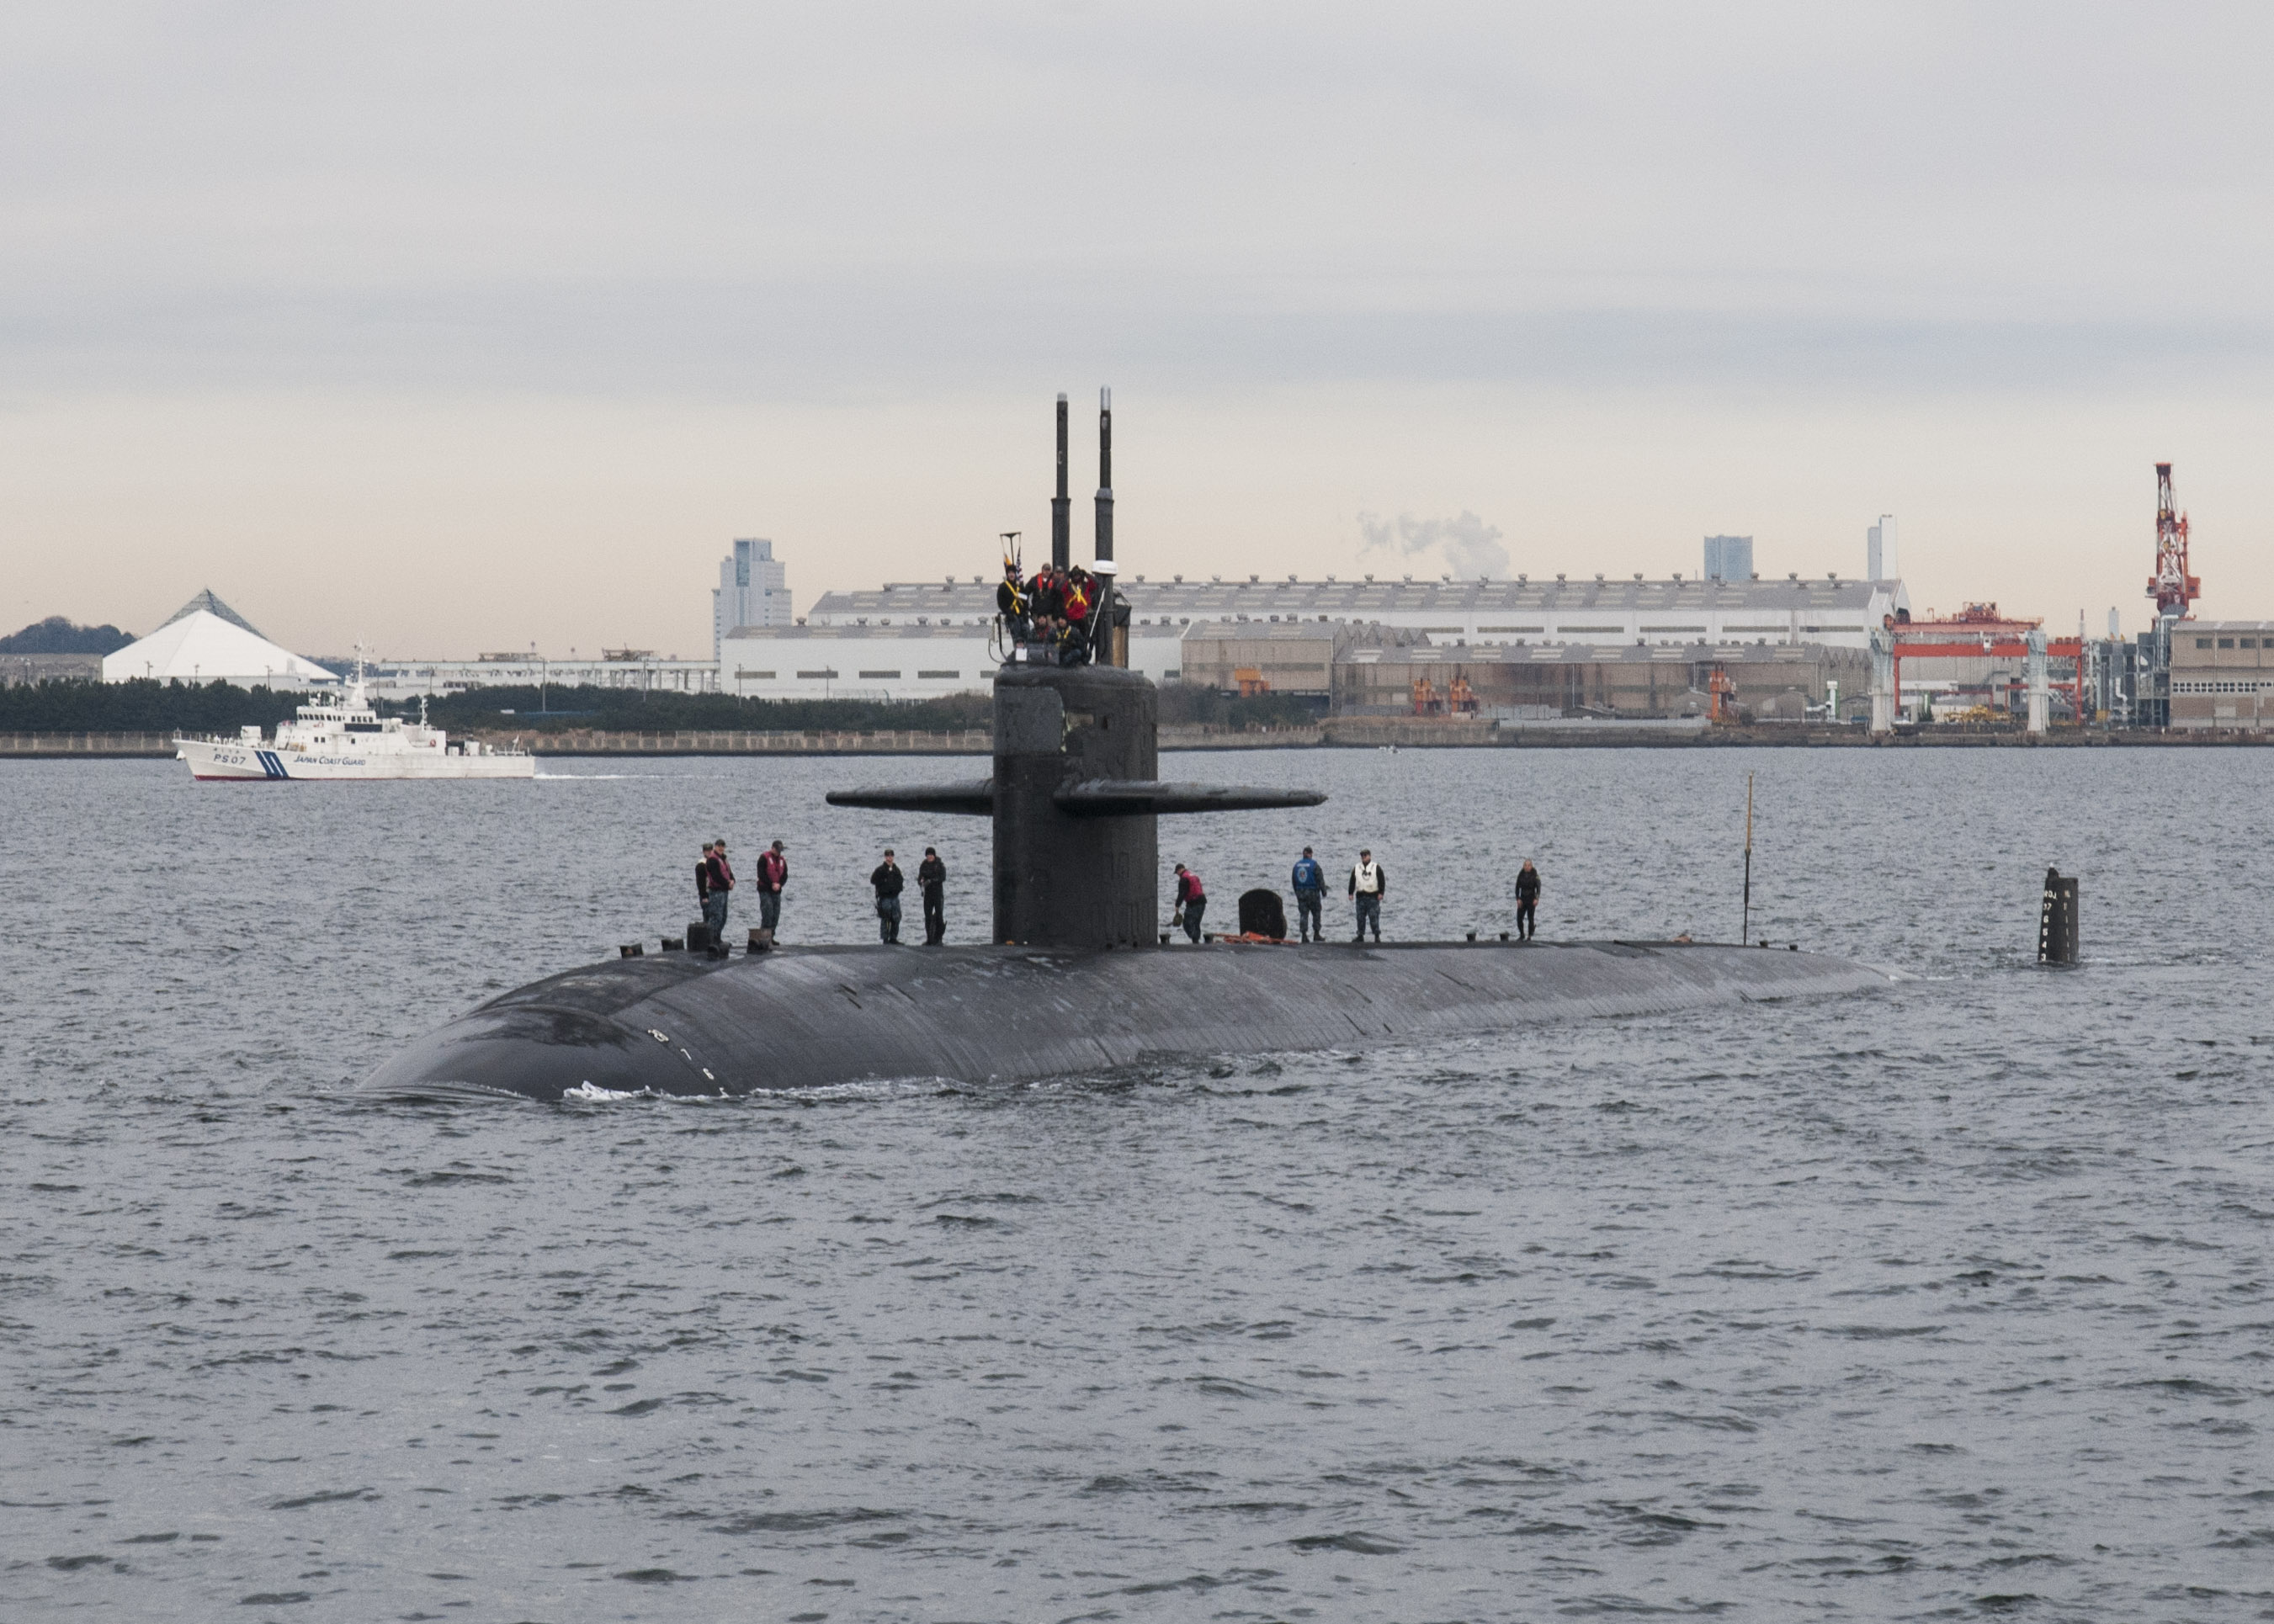 USS CITY OF CORPUS CHRISTI SSN-705 Einlaufen Yokosuka am 11.01.2016 Bild: U.S. Navy